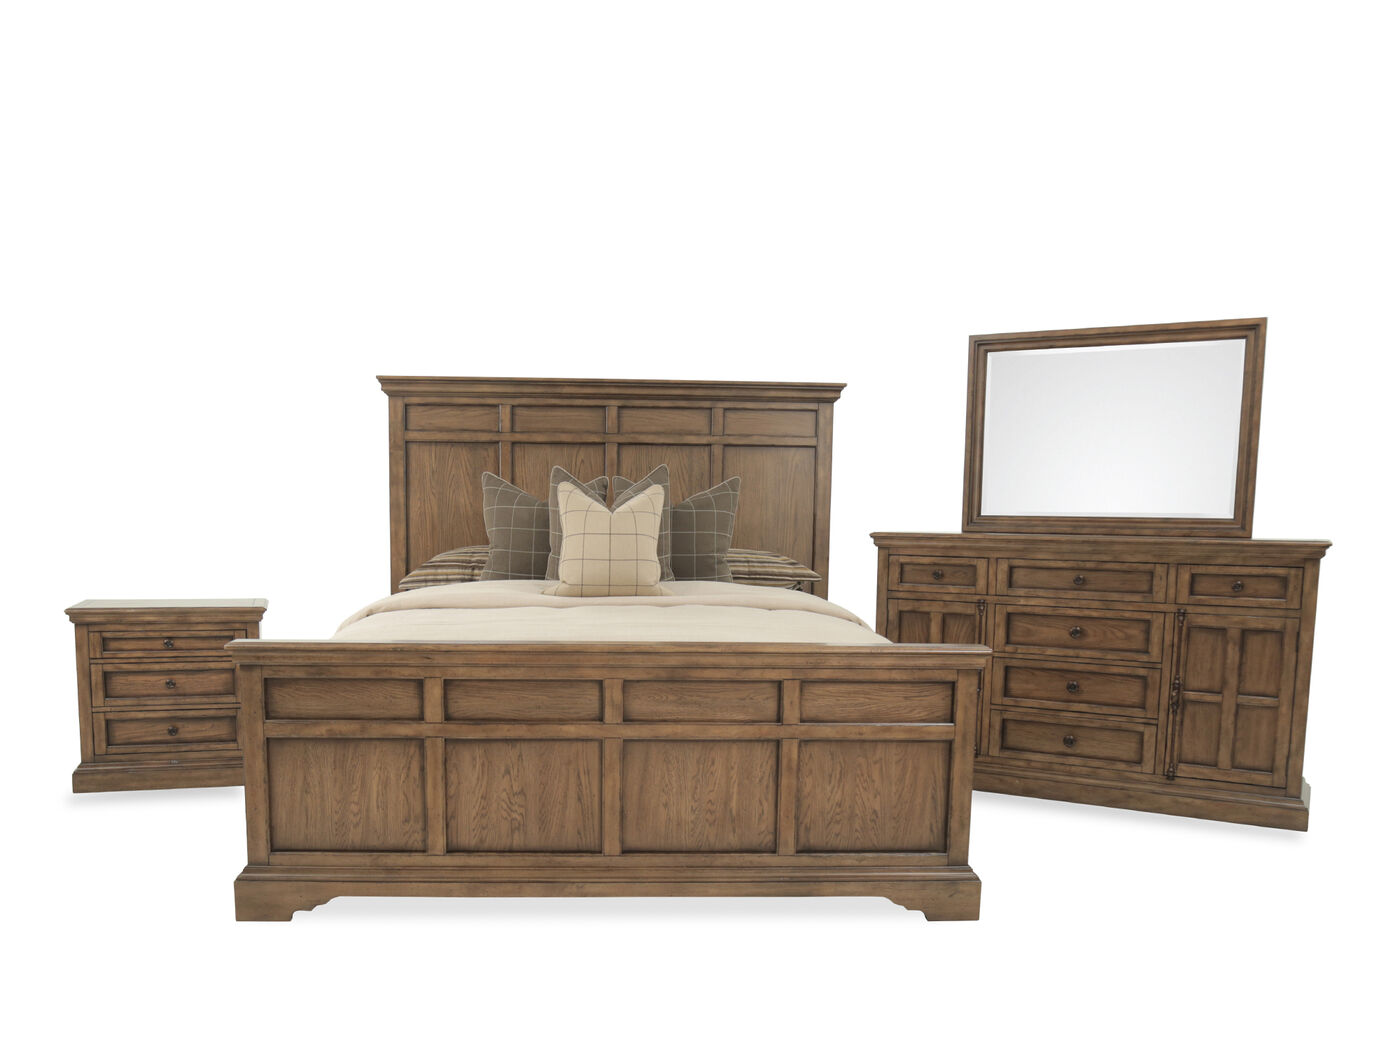 transitional bedroom furniture. Four-Piece Transitional Bedroom Set In Brown Furniture T